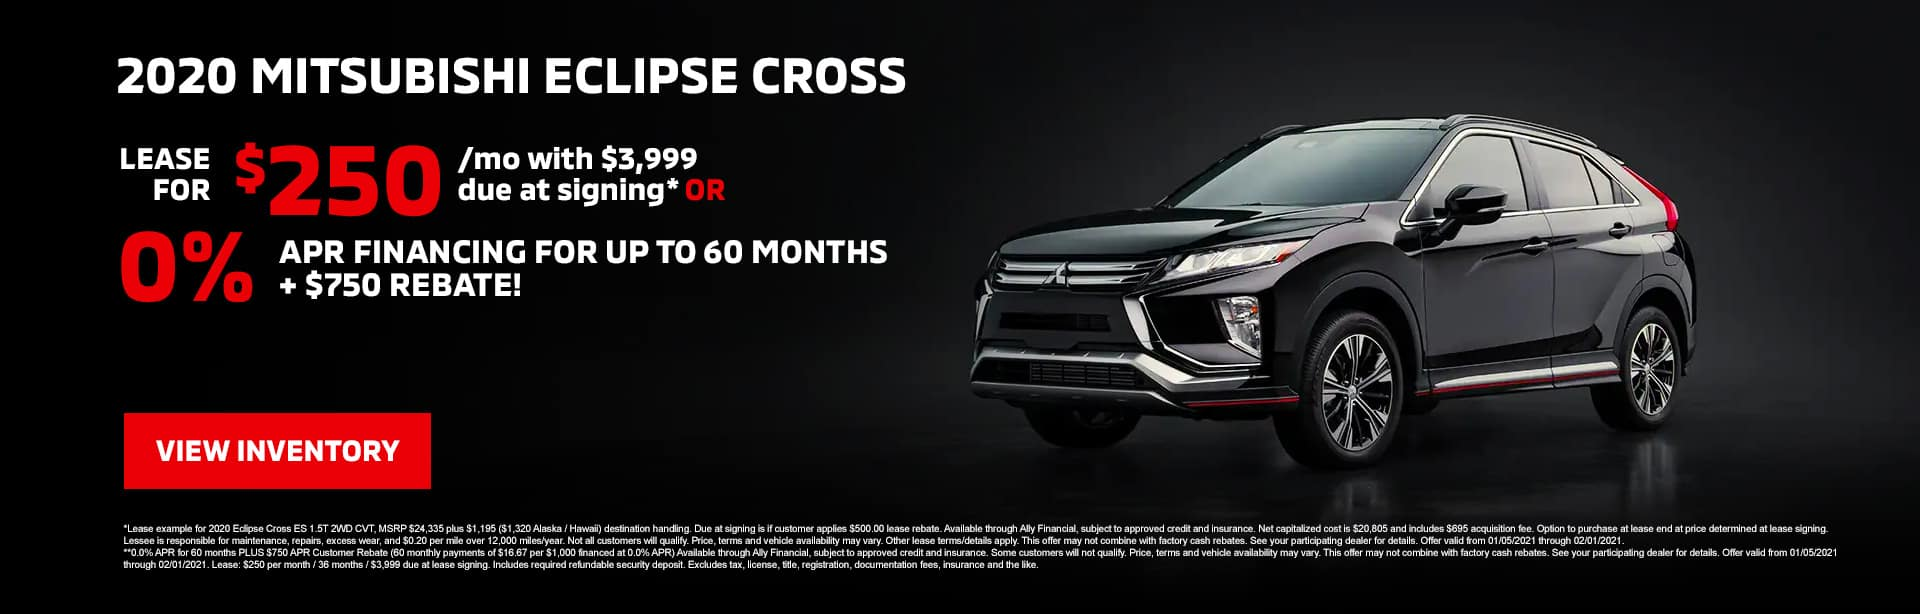 2020 Mitsubishi Eclipse Cross: Lease for $250/mo with $3,999 due at signing* OR 0.0% APR financing available for up to 60 months PLUS $750 APR Customer Rebate**